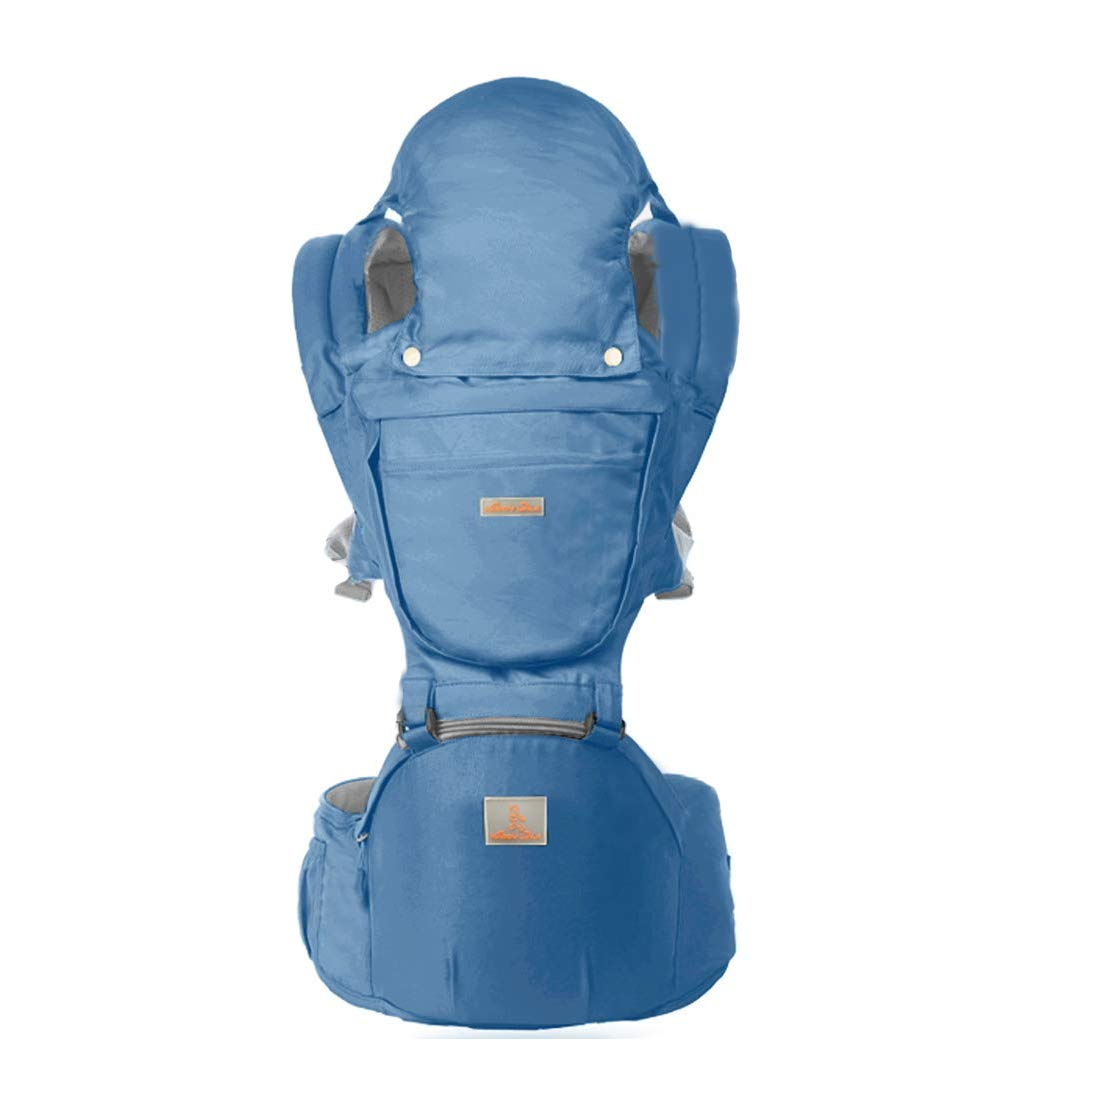 Baby Carrier with Hip Seat 360 Ergonomic 6-in-1 Convertible Hipseat Baby Waist Stool Carrier for All Seasons, Toddler Tush Stool, Baby Wrap Carrier Front and Back Blue